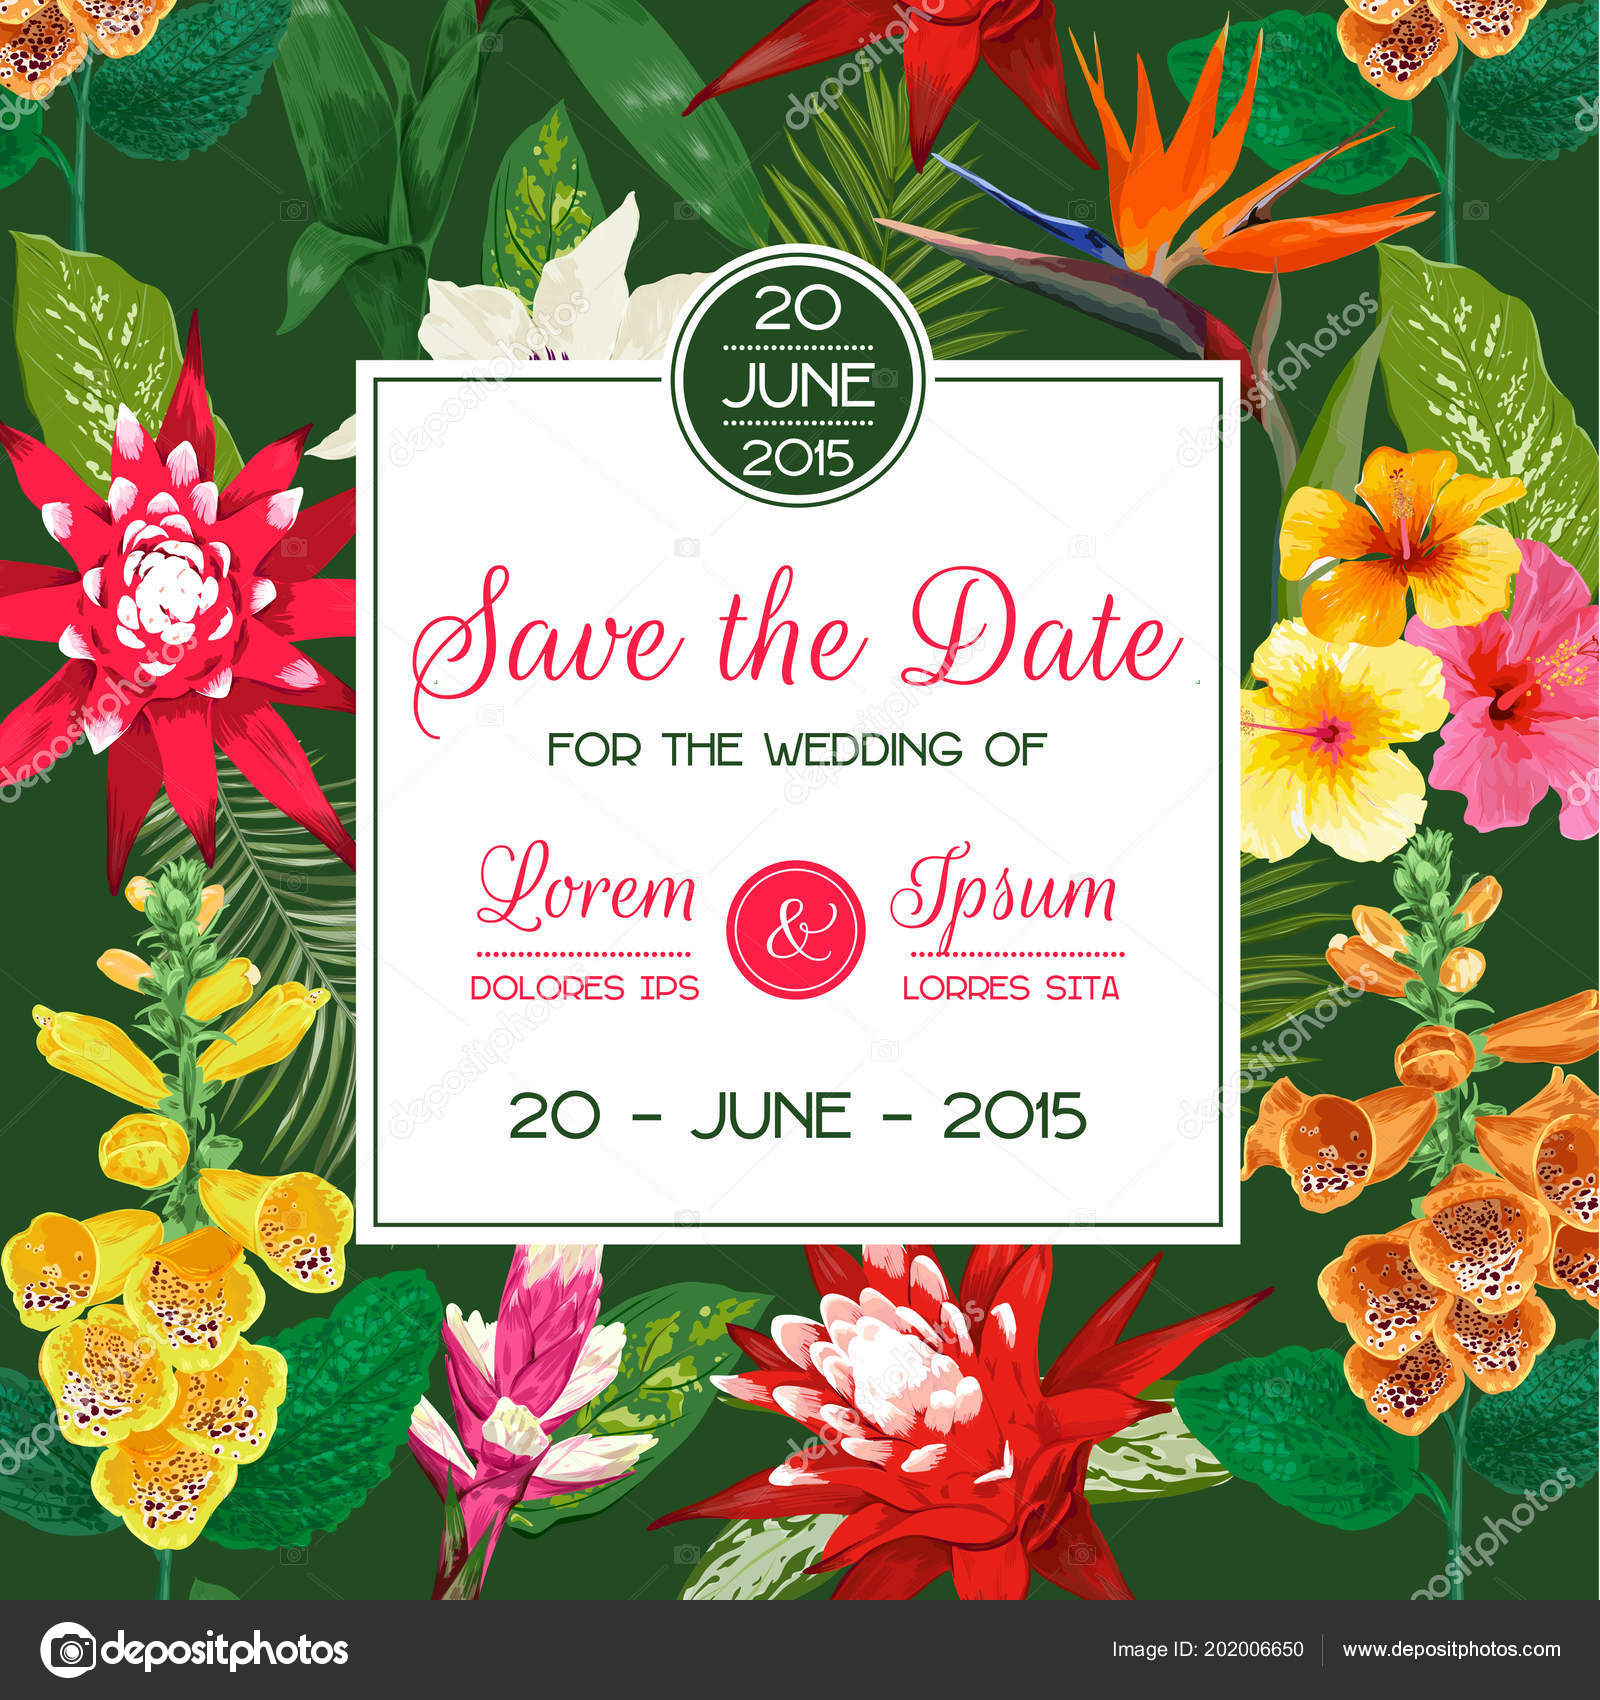 Wedding invitation template with tiger lily flowers and palm leaves wedding invitation template with tiger lily flowers and palm leaves tropical floral save the date izmirmasajfo